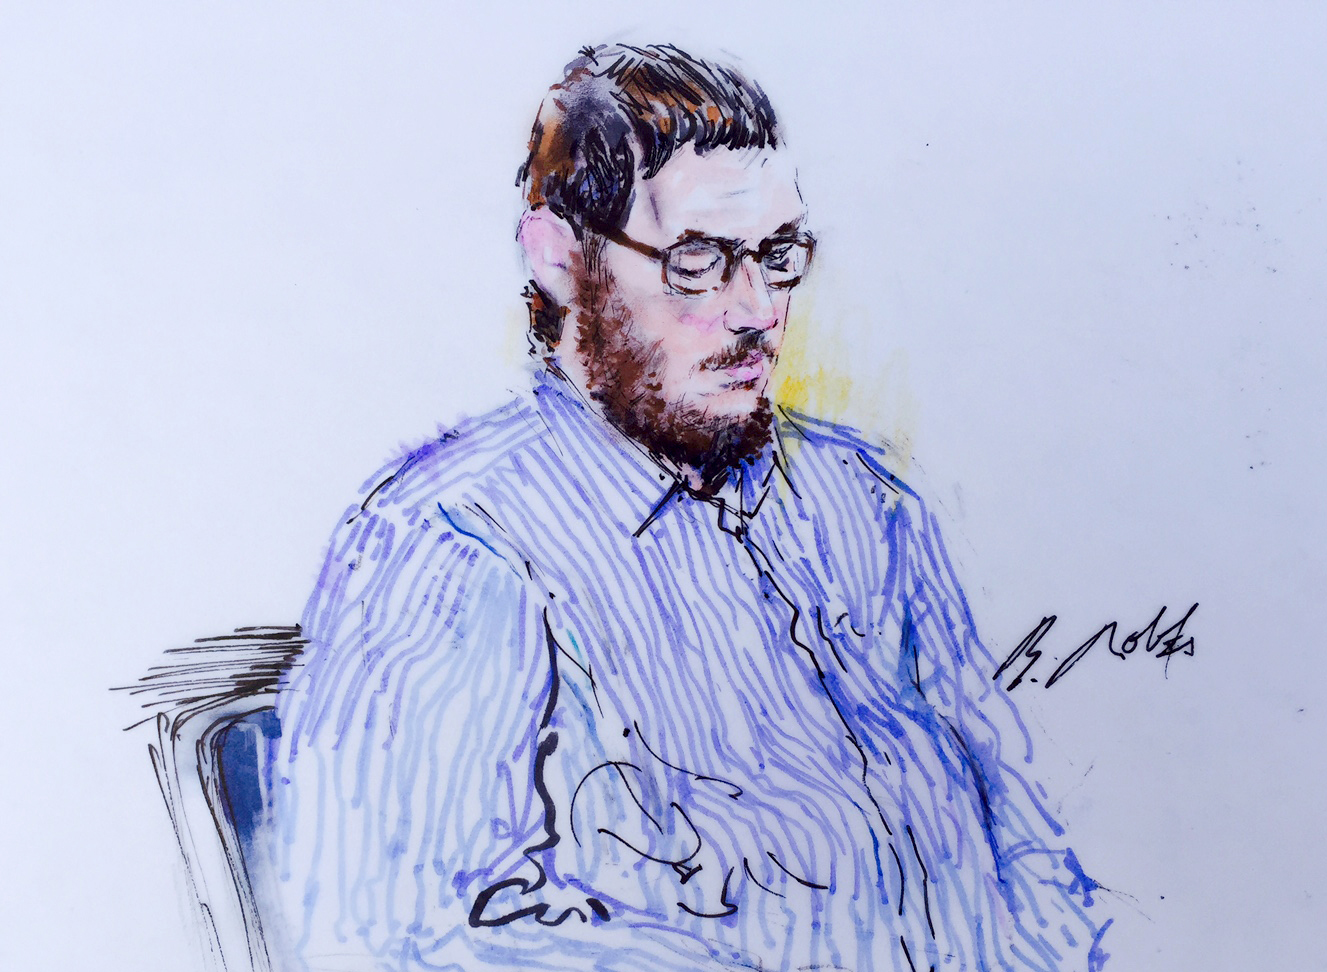 Photo: James Holmes sketch, looking down, Aurora theater shooting trial